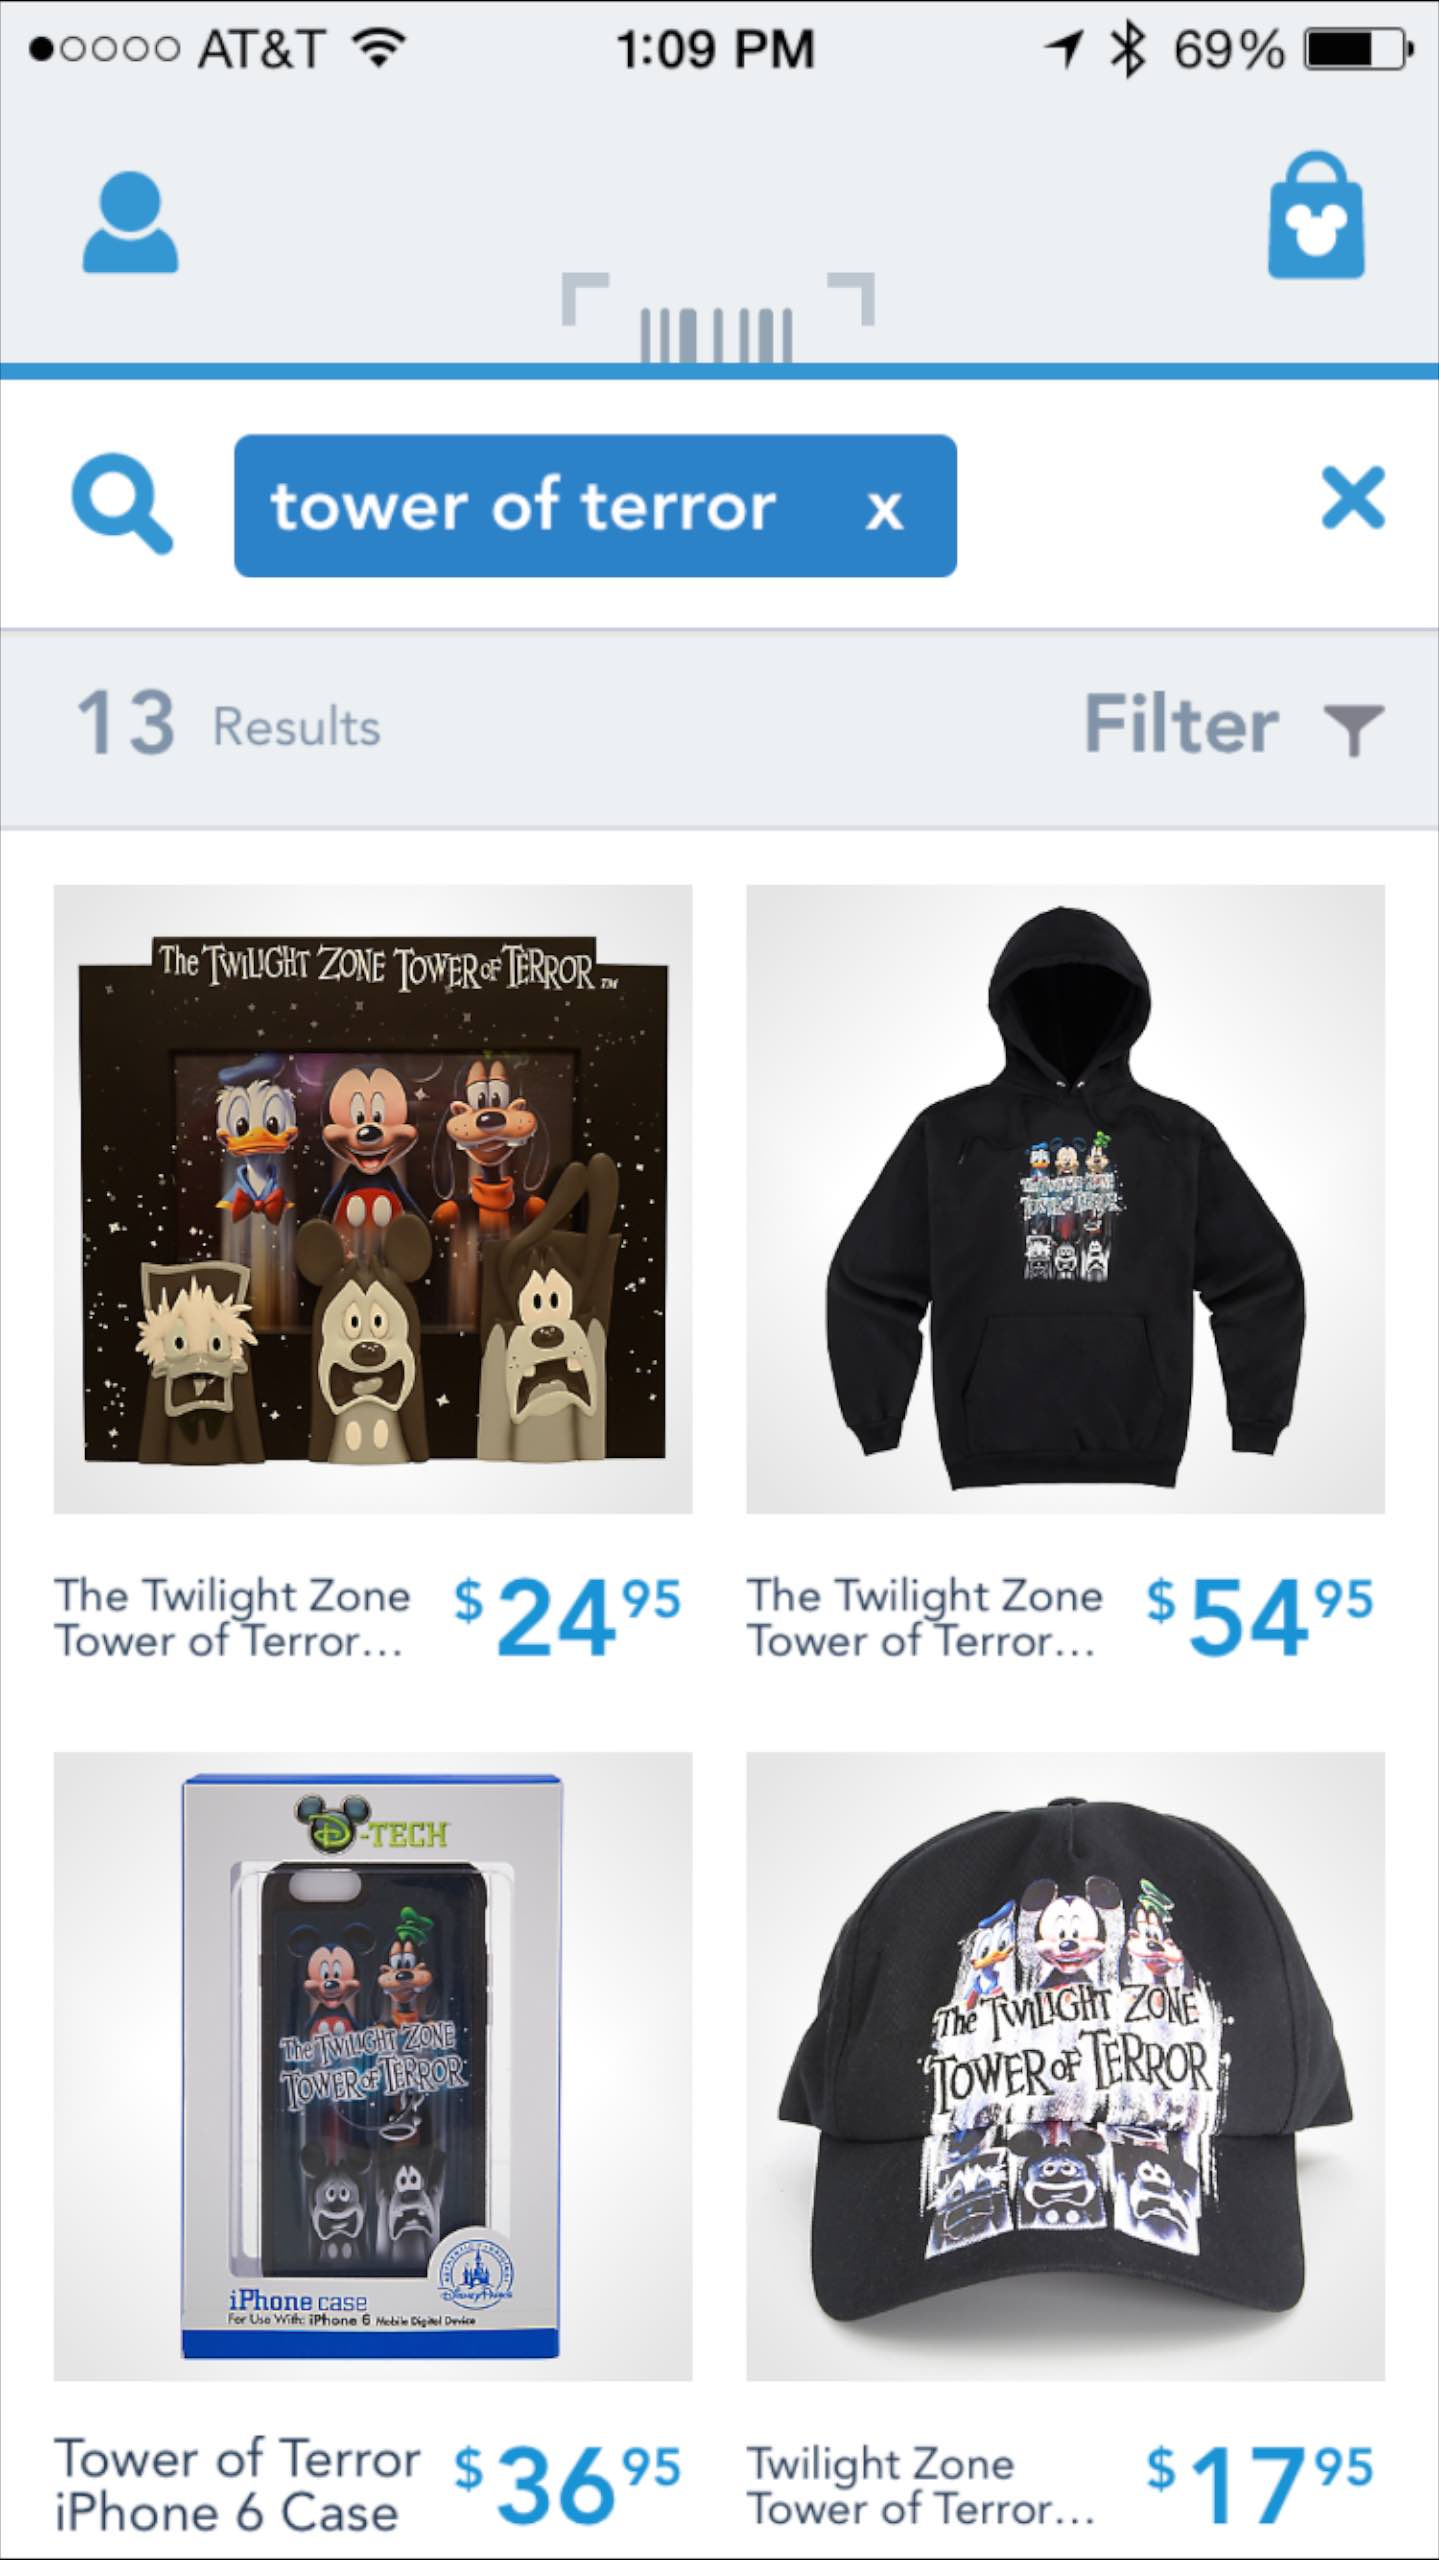 Shop Disney Parks app - Search for Tower of Terror